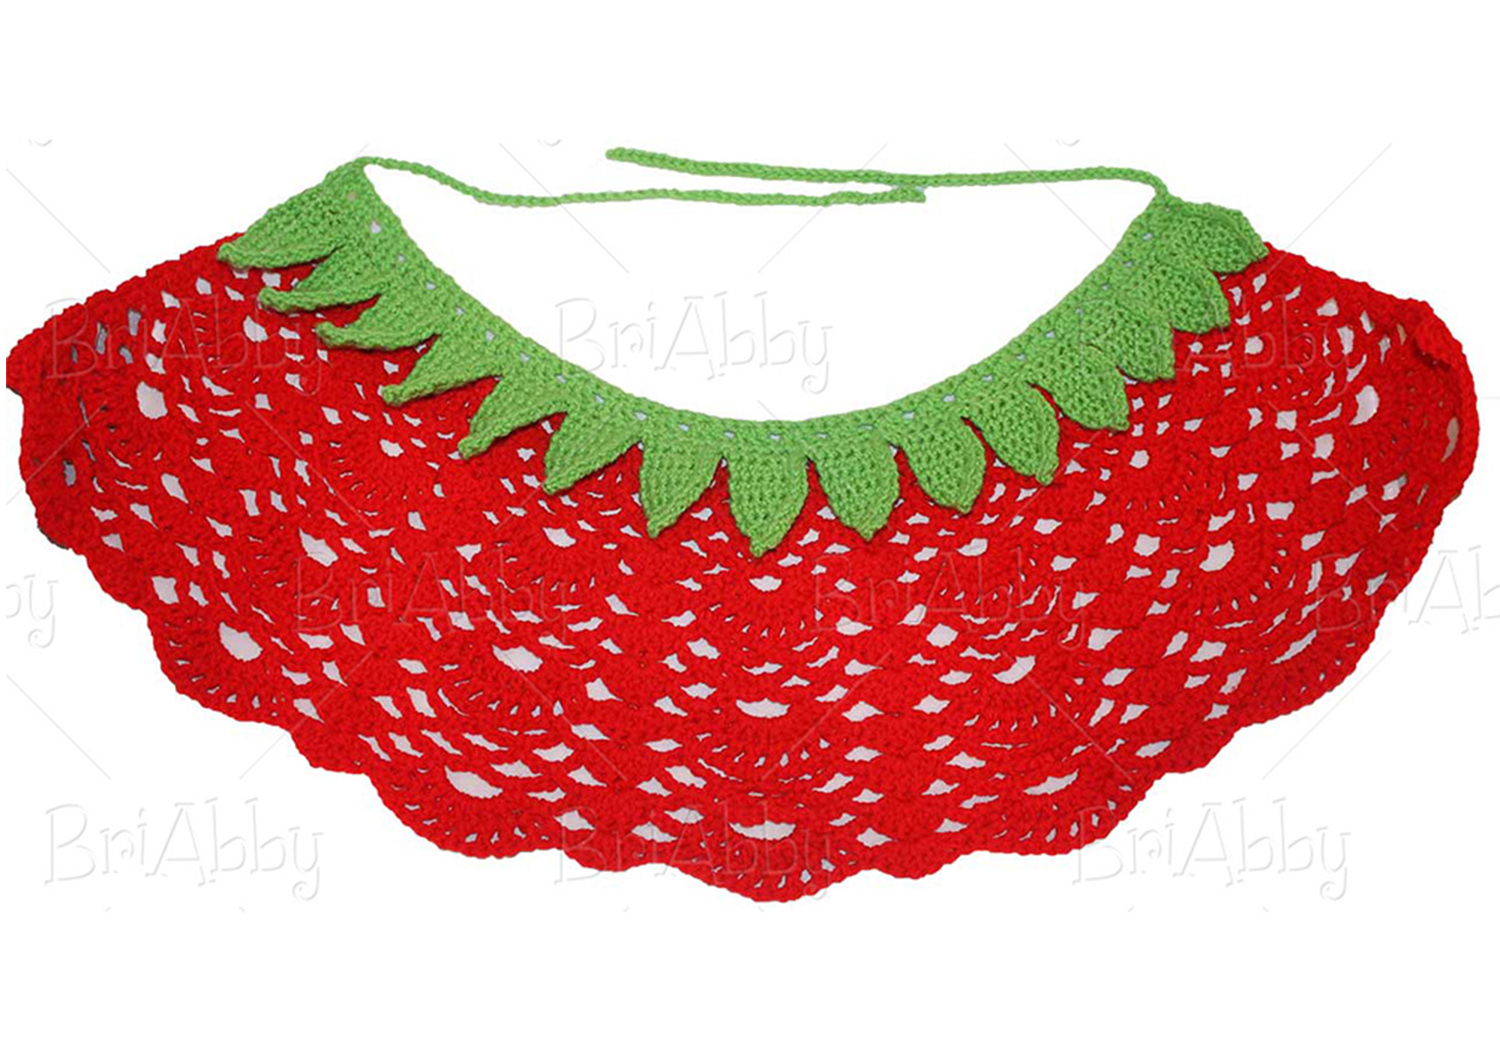 Crochet Strawberry Skirt